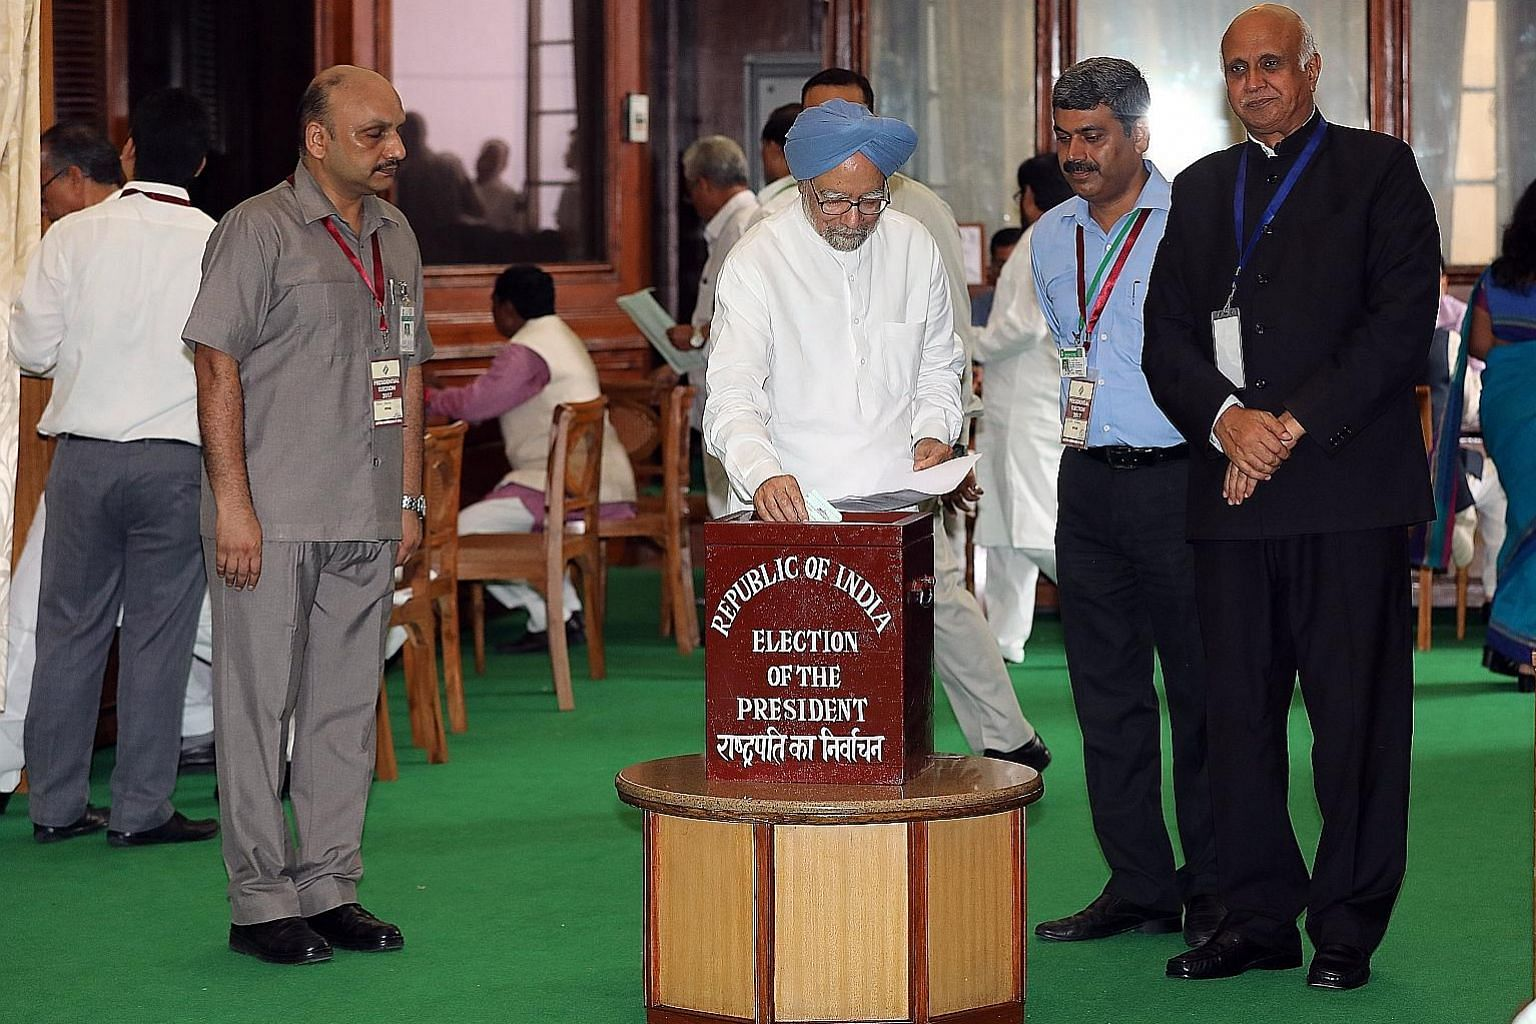 Former Indian prime minister Manmohan Singh casting his vote at Parliament House in New Delhi yesterday to elect the country's 14th president, a largely ceremonial post that is being contested by ruling BJP candidate Ram Nath Kovind and opposition Co